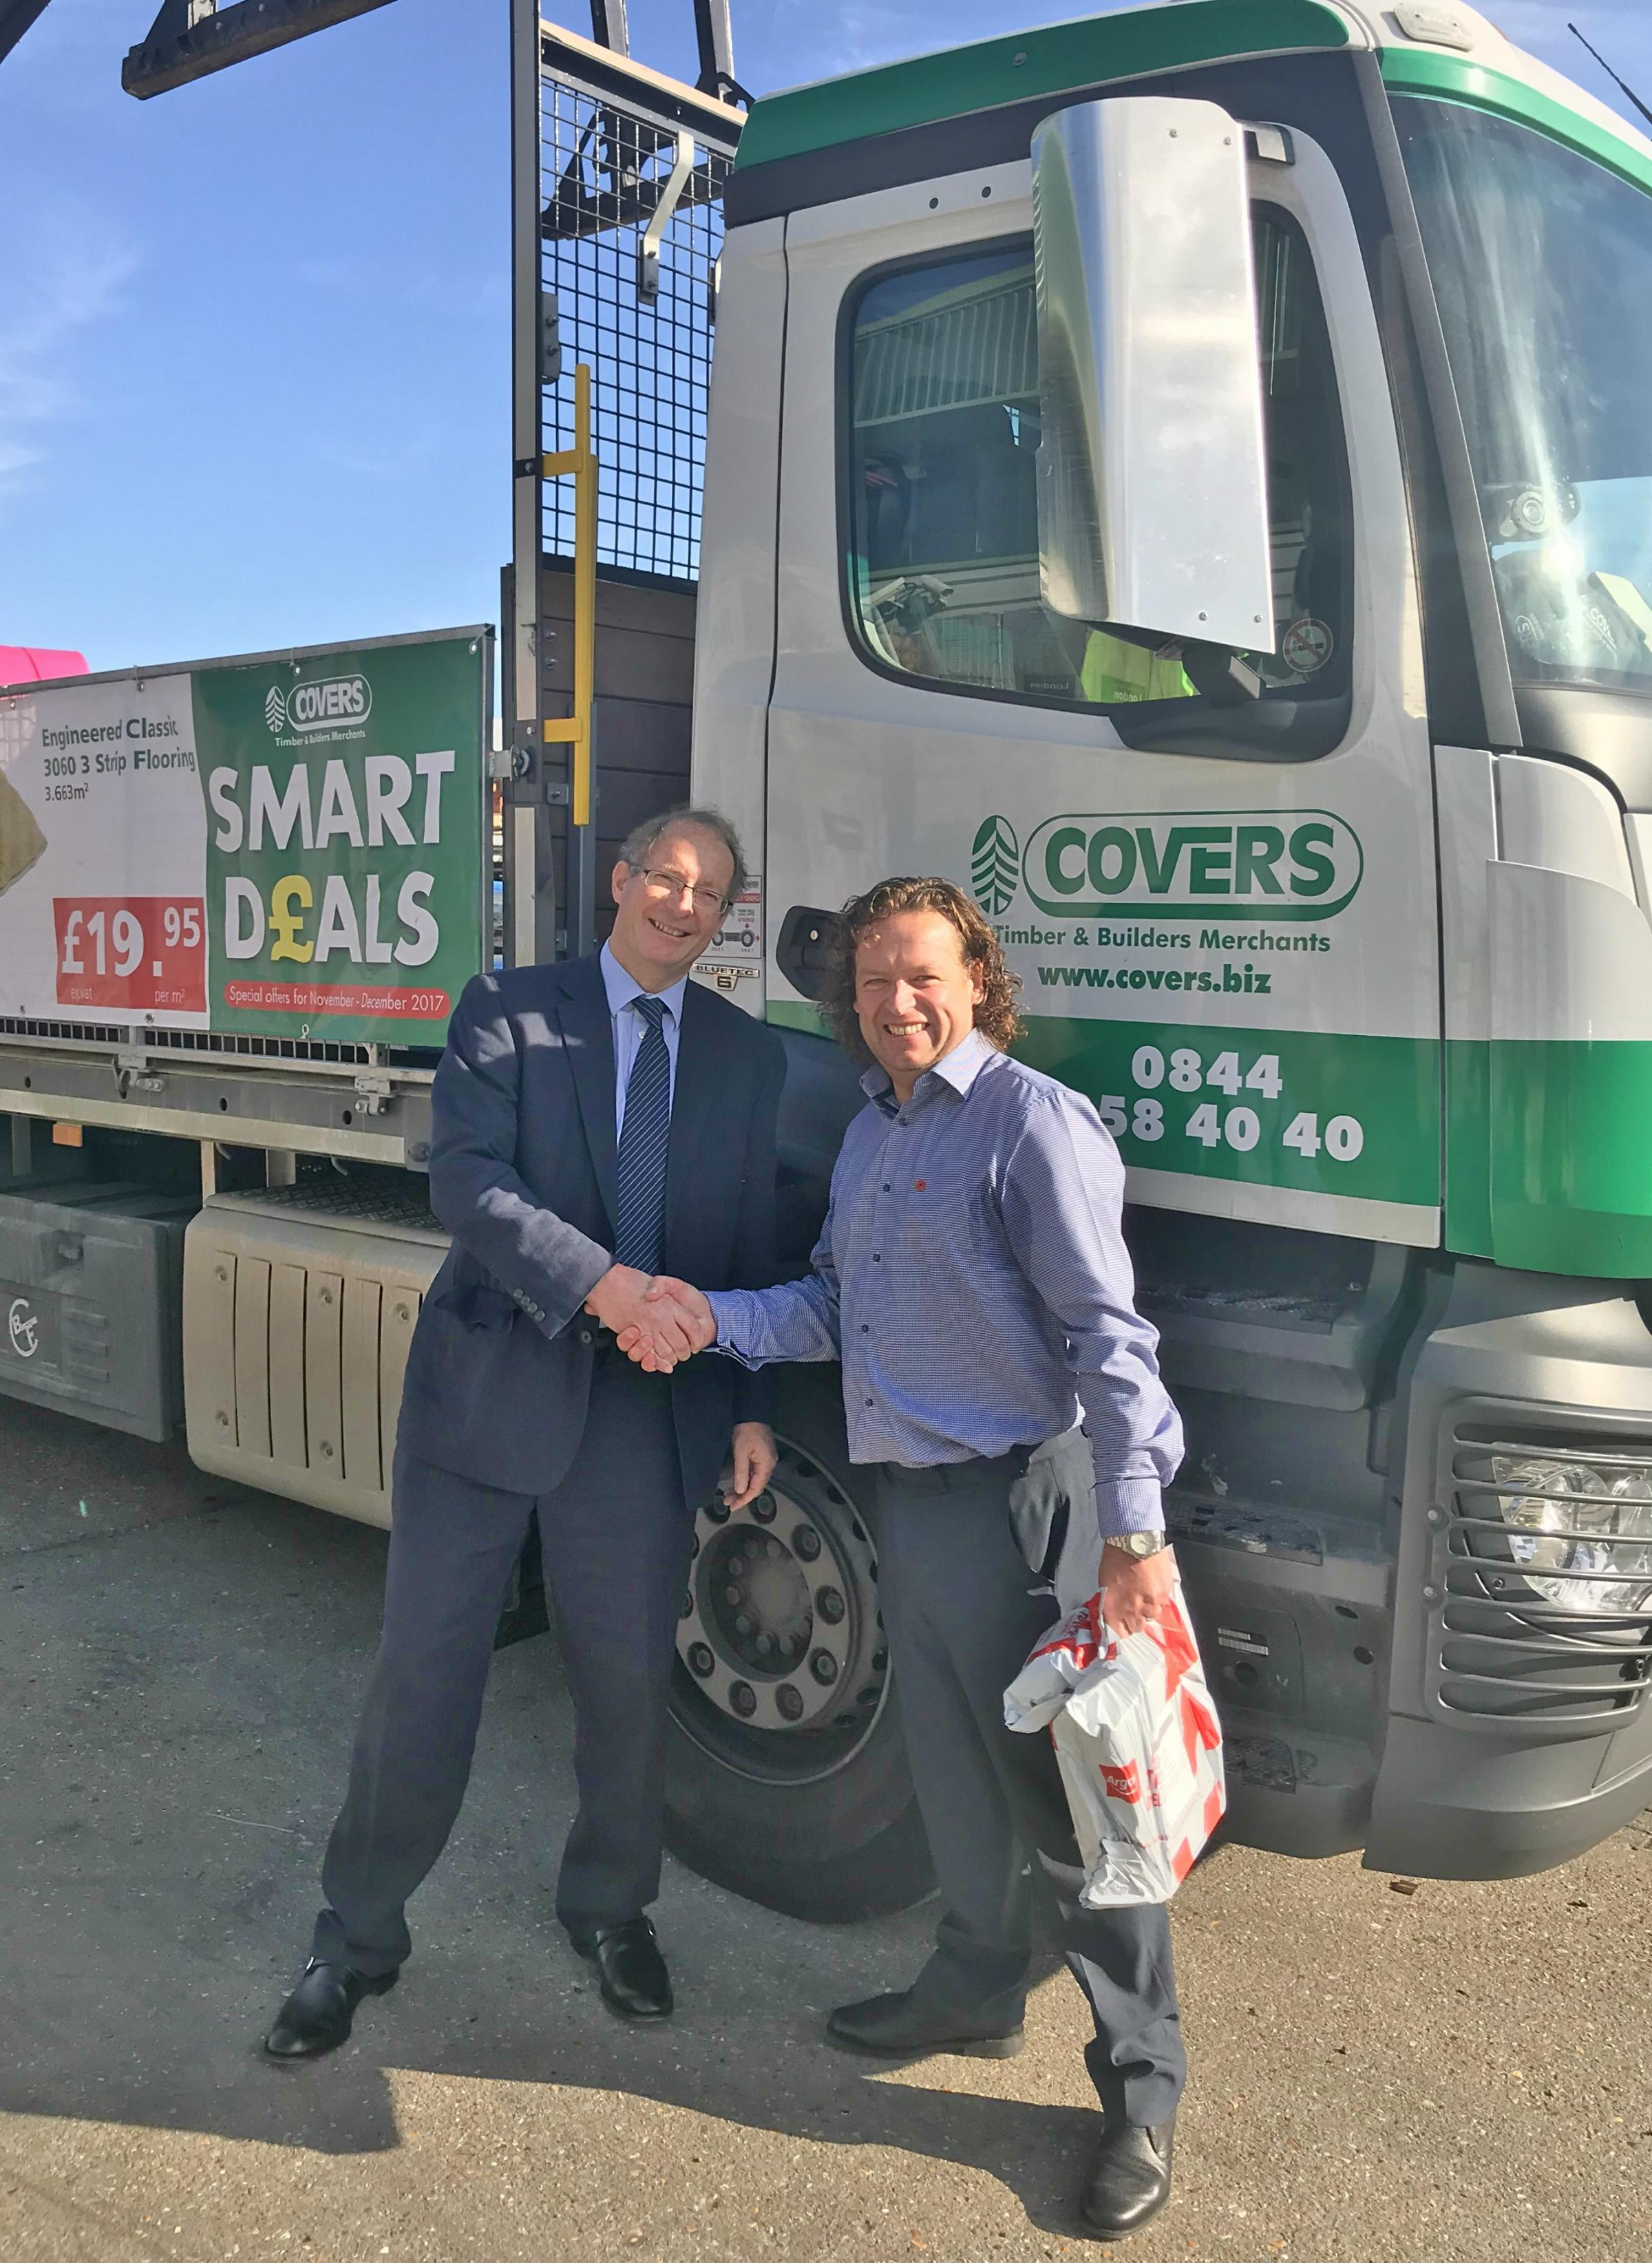 Rupert Green, Chairman at Covers Timber & Builders Merchant, congratulating Nick Terry, Sales Representative at Covers of Brighton, on his long service.